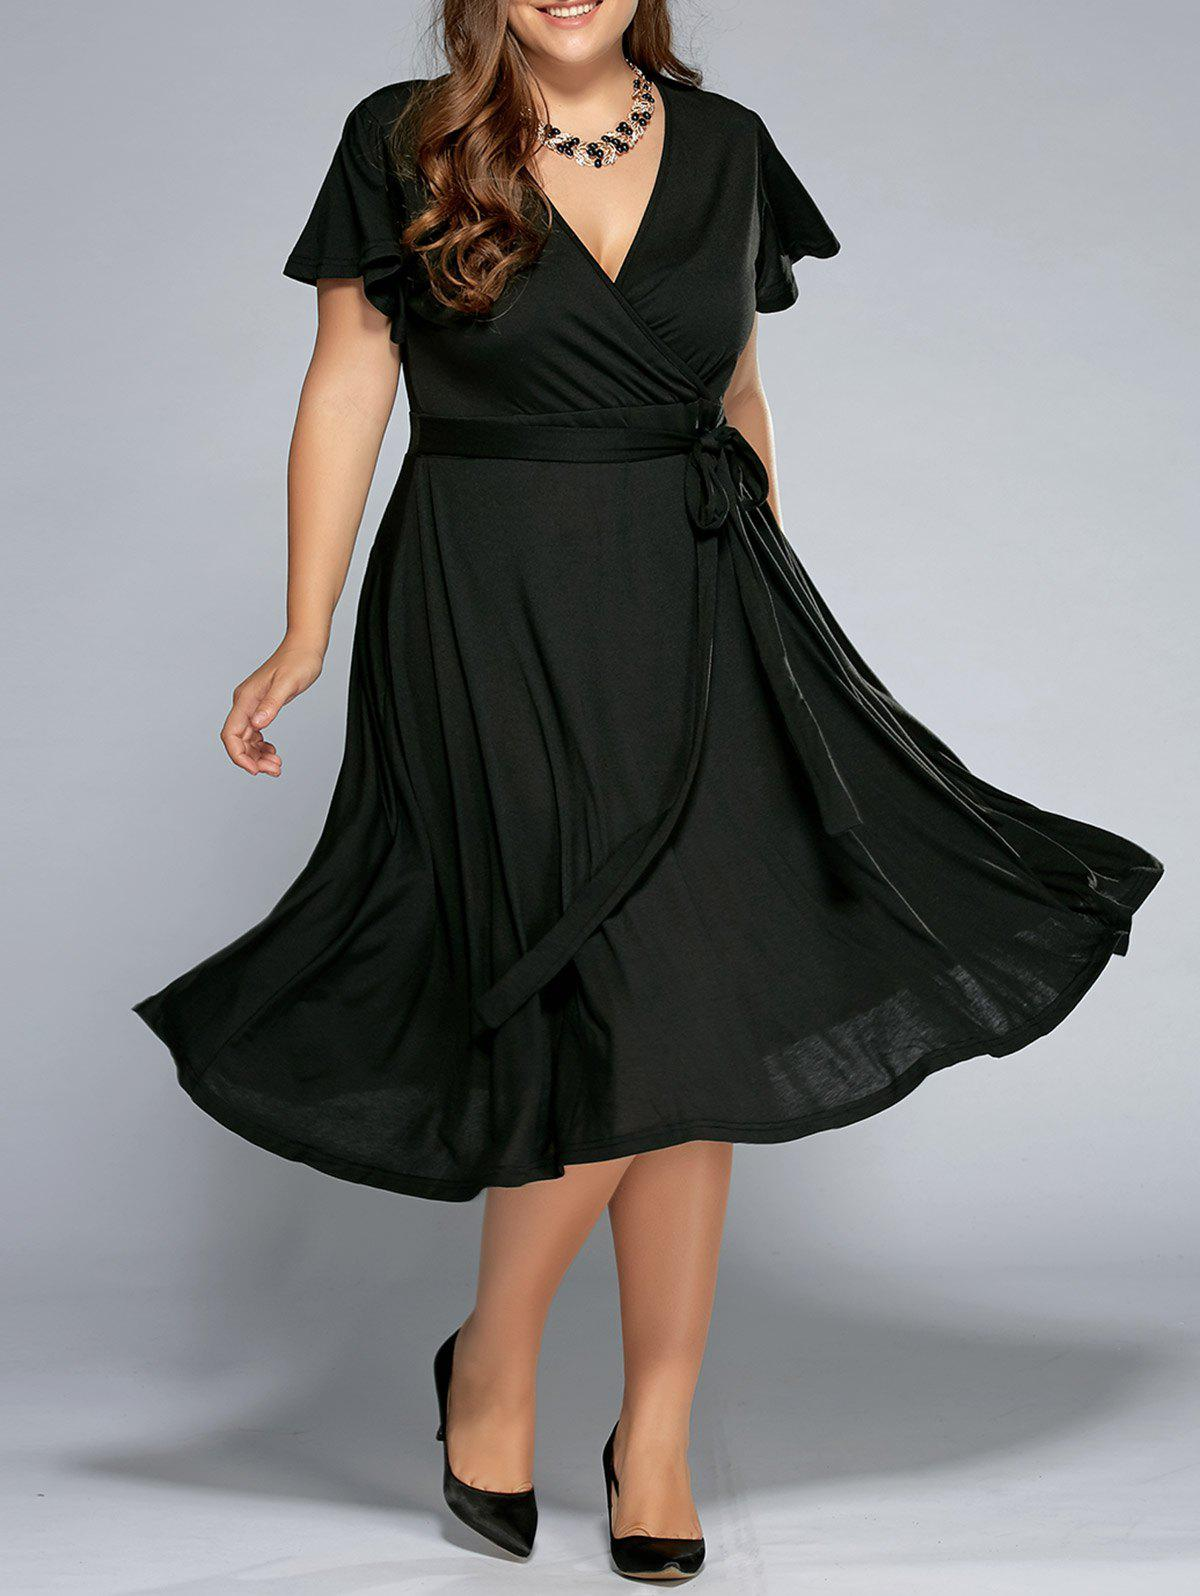 Low Cut A Line Plus Size Surplice Front Tie Swing DressWOMEN<br><br>Size: 4XL; Color: BLACK; Style: Casual; Material: Cotton,Polyester; Silhouette: A-Line; Dresses Length: Mid-Calf; Neckline: V-Neck; Sleeve Length: Short Sleeves; Pattern Type: Solid; With Belt: No; Season: Summer; Weight: 0.5260kg; Package Contents: 1 x Dress;